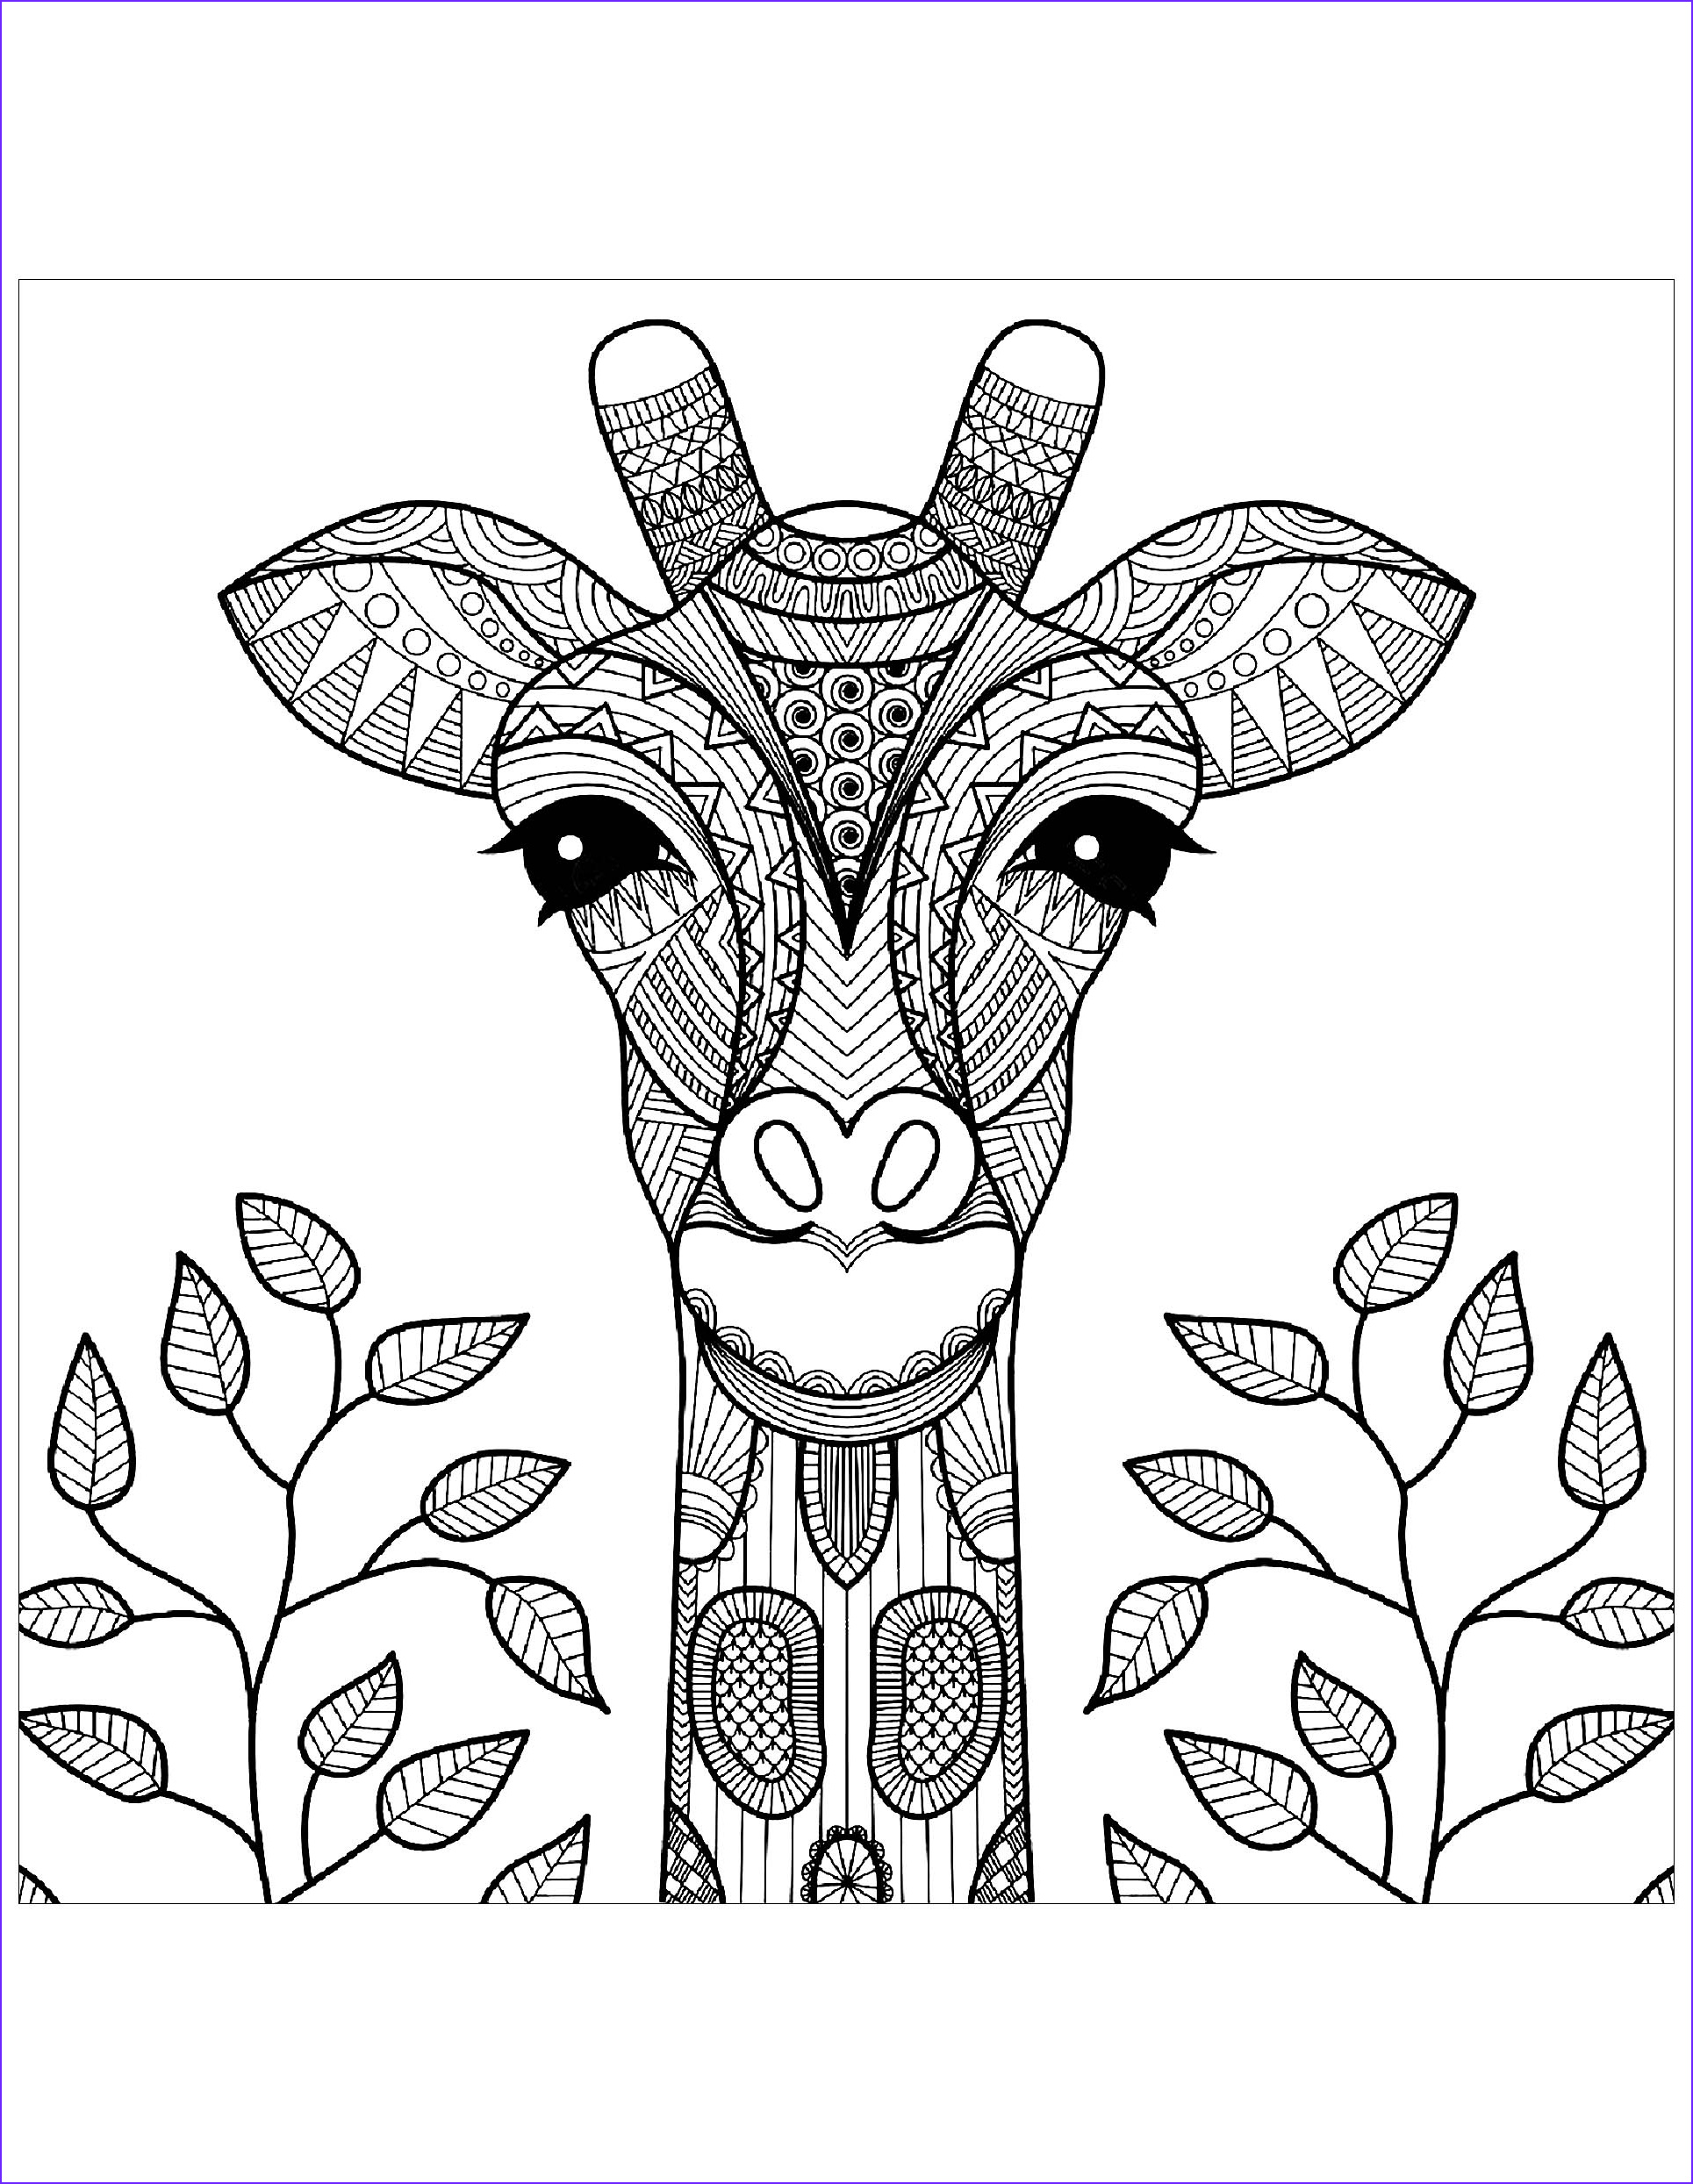 Girraffe Coloring Awesome Photography Giraffe Head with Leaves Giraffes Adult Coloring Pages